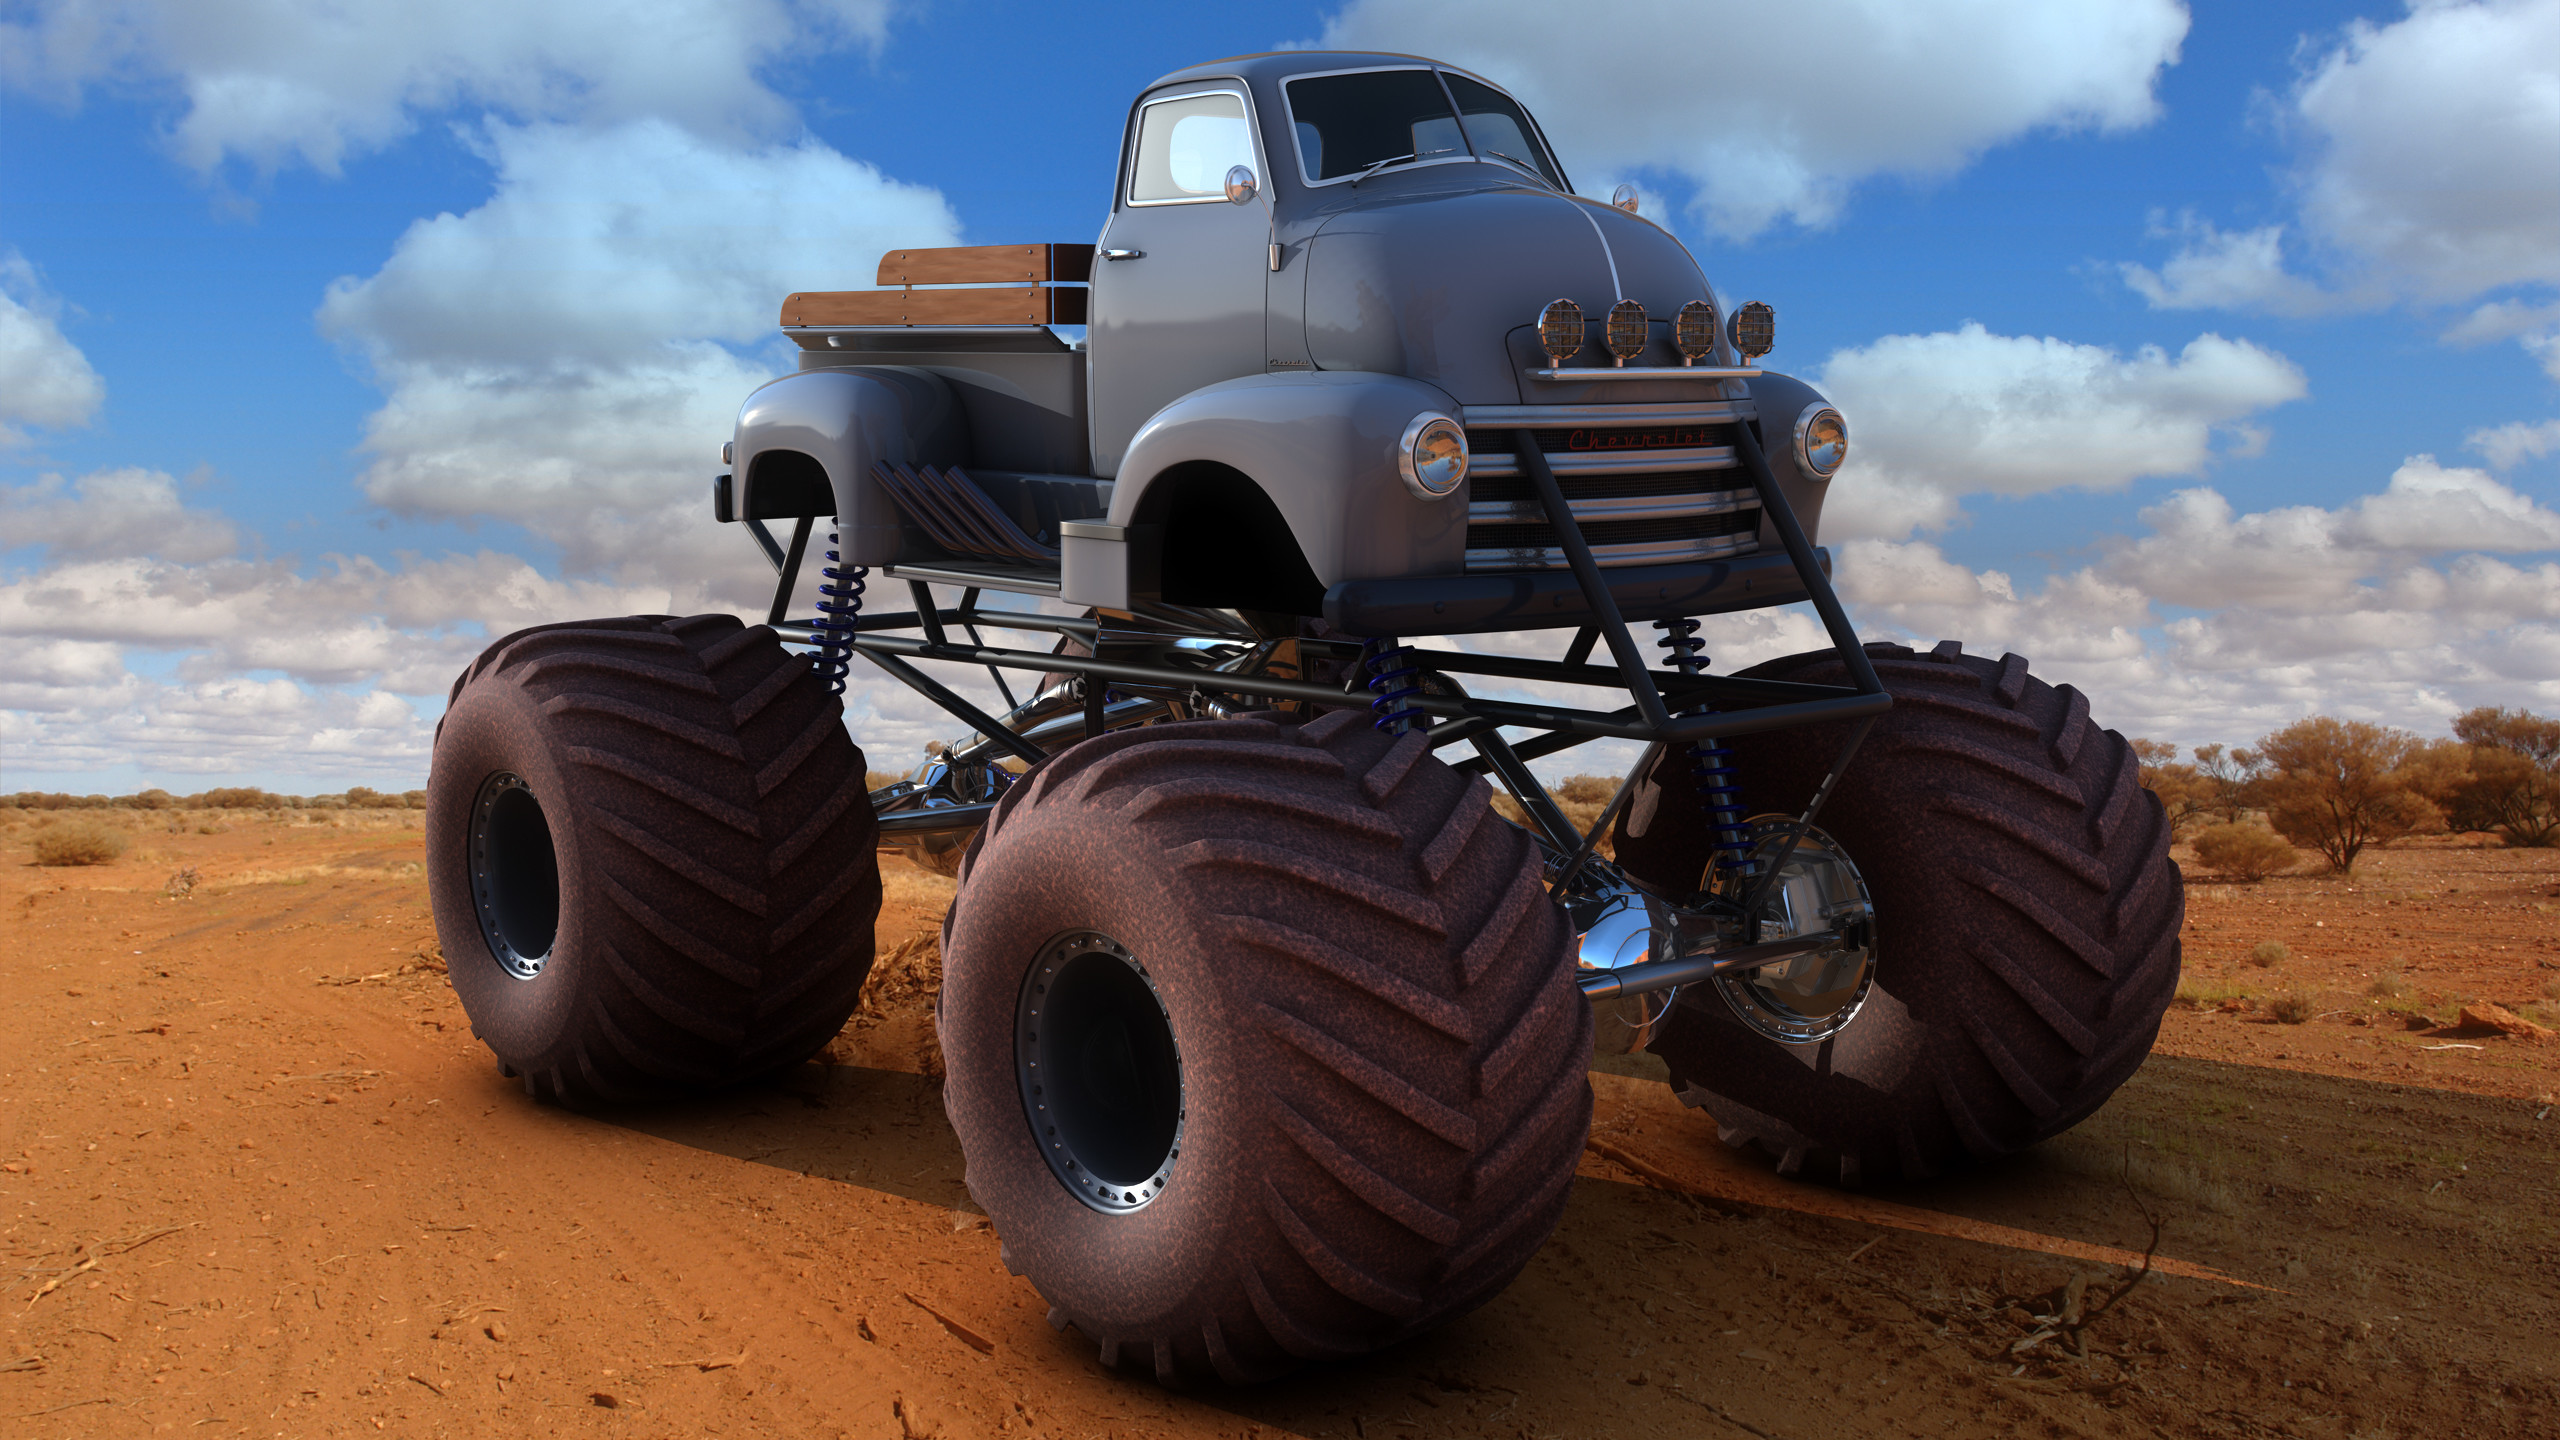 Res: 2560x1440, ... Chevy COE Monster Truck by SamCurry